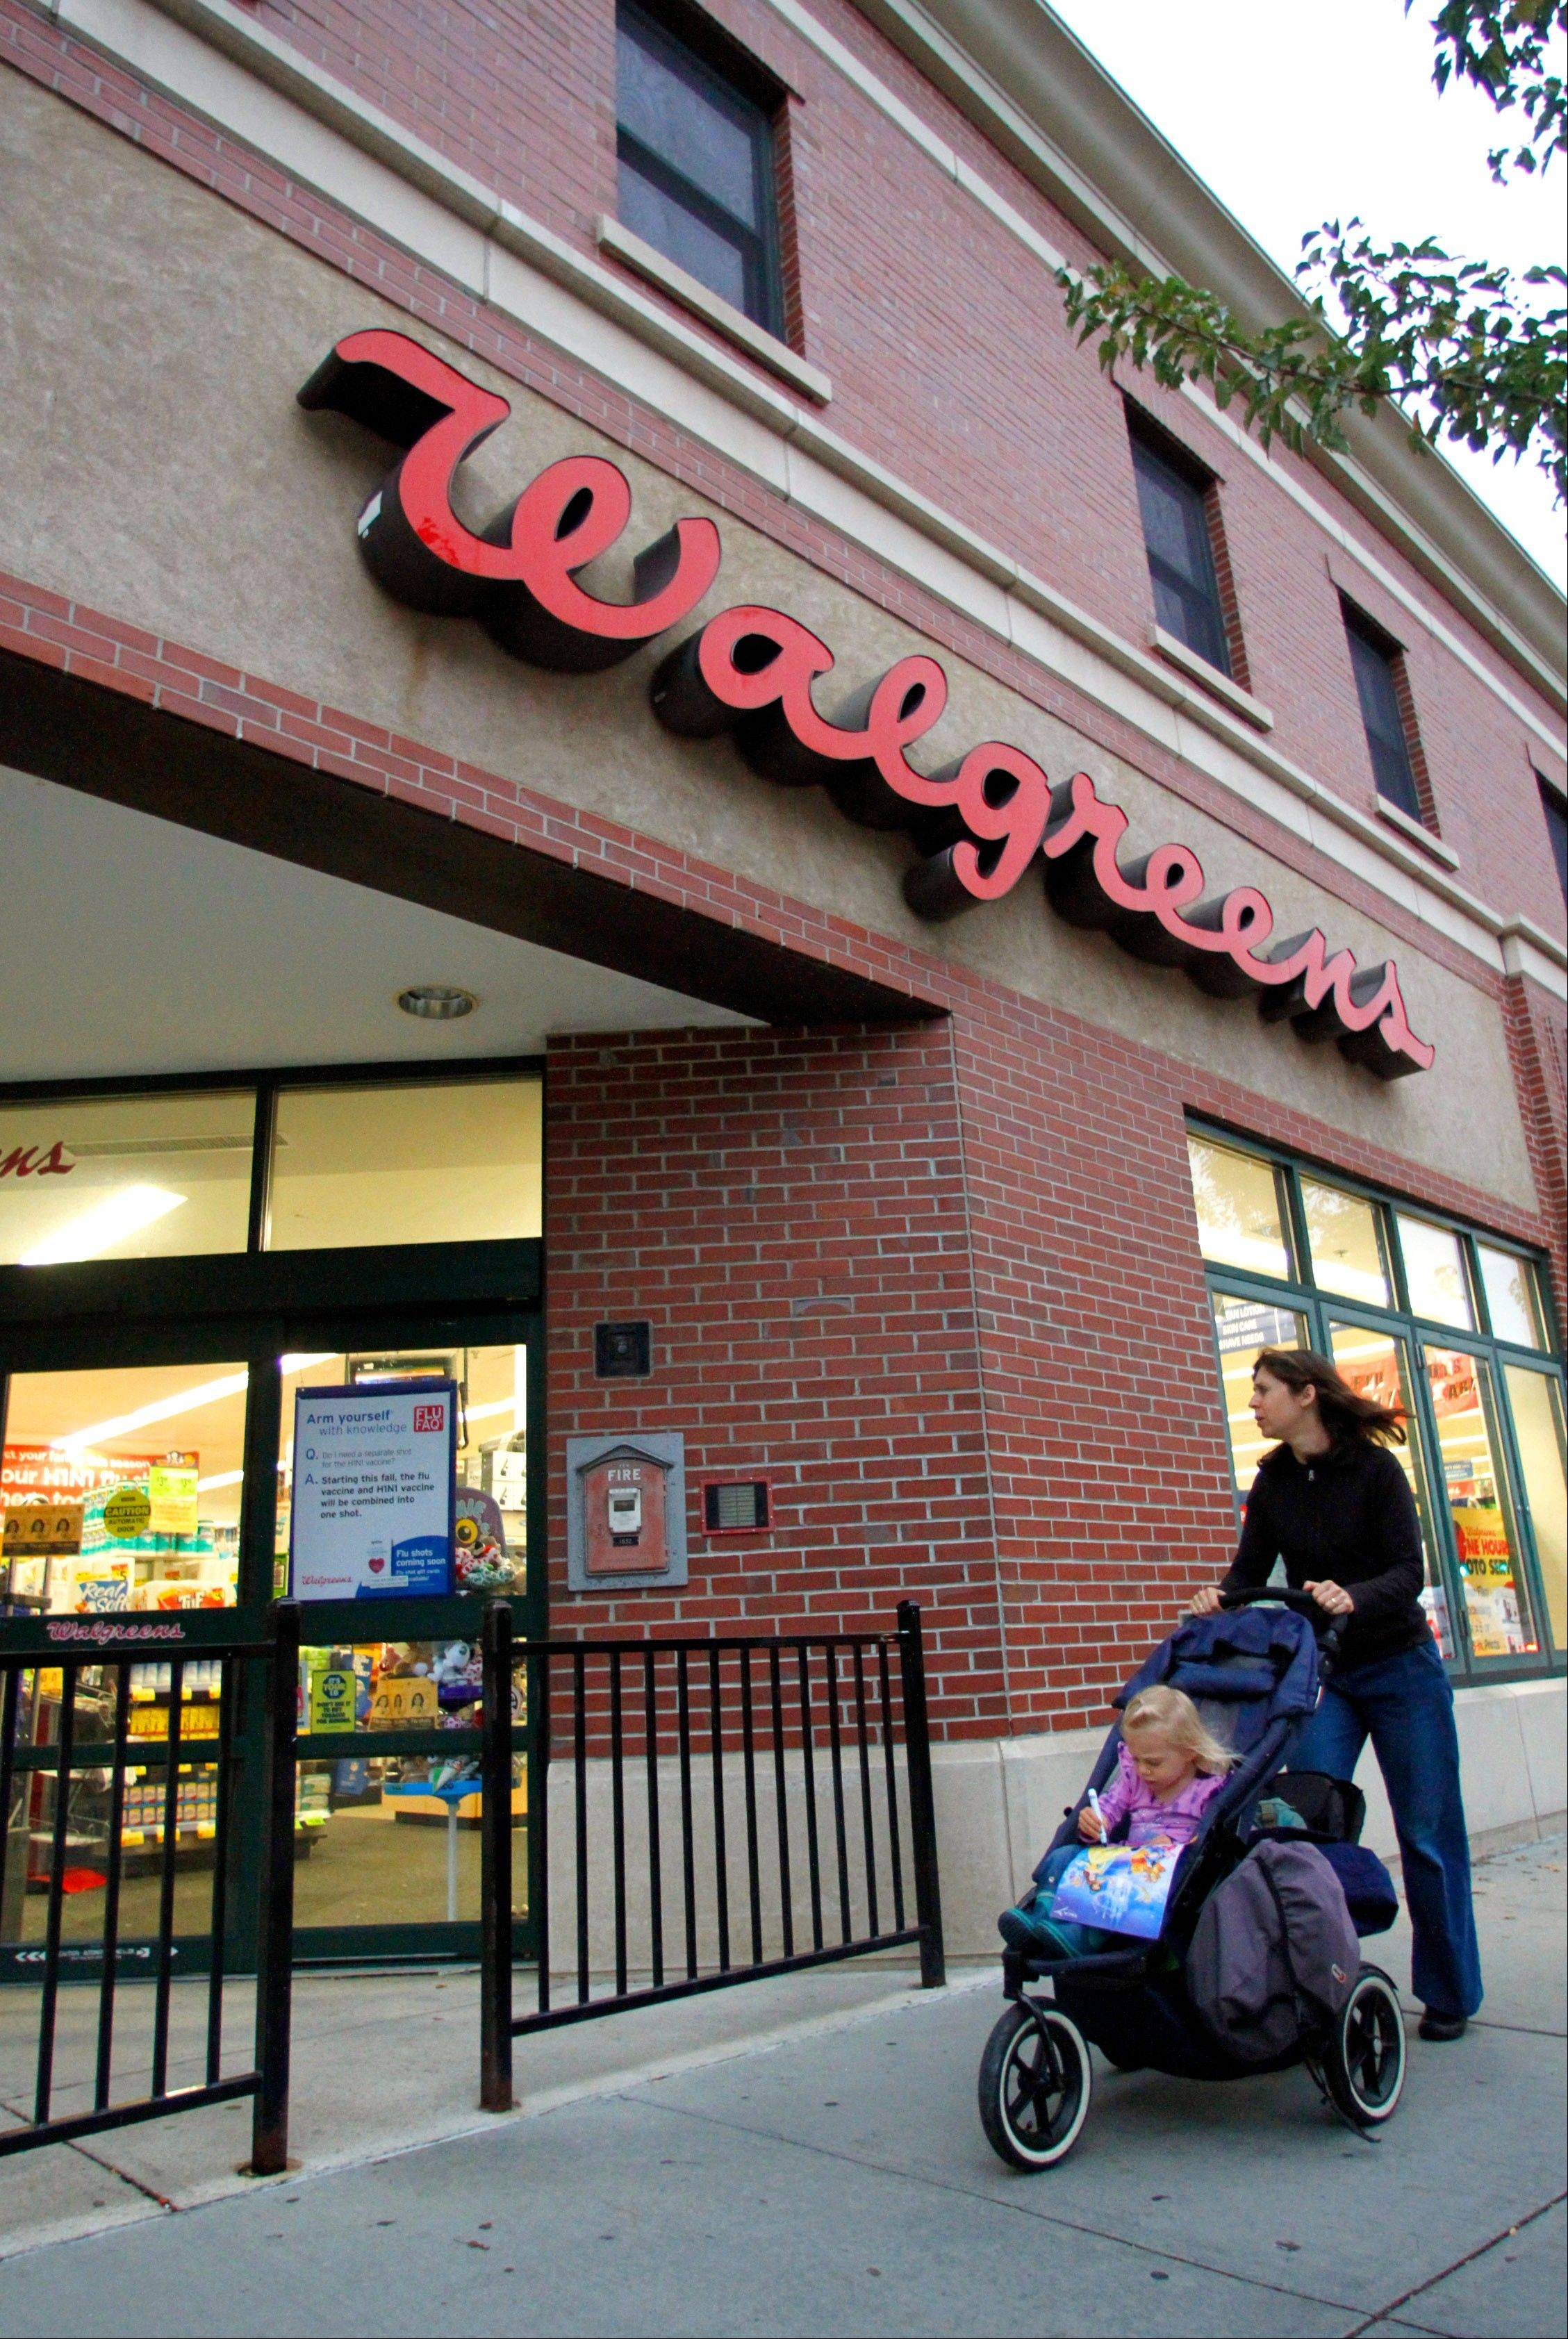 Walgreen plans to invest $75 million to expand and renovate more than two dozen corporate offices in northern Illinois.